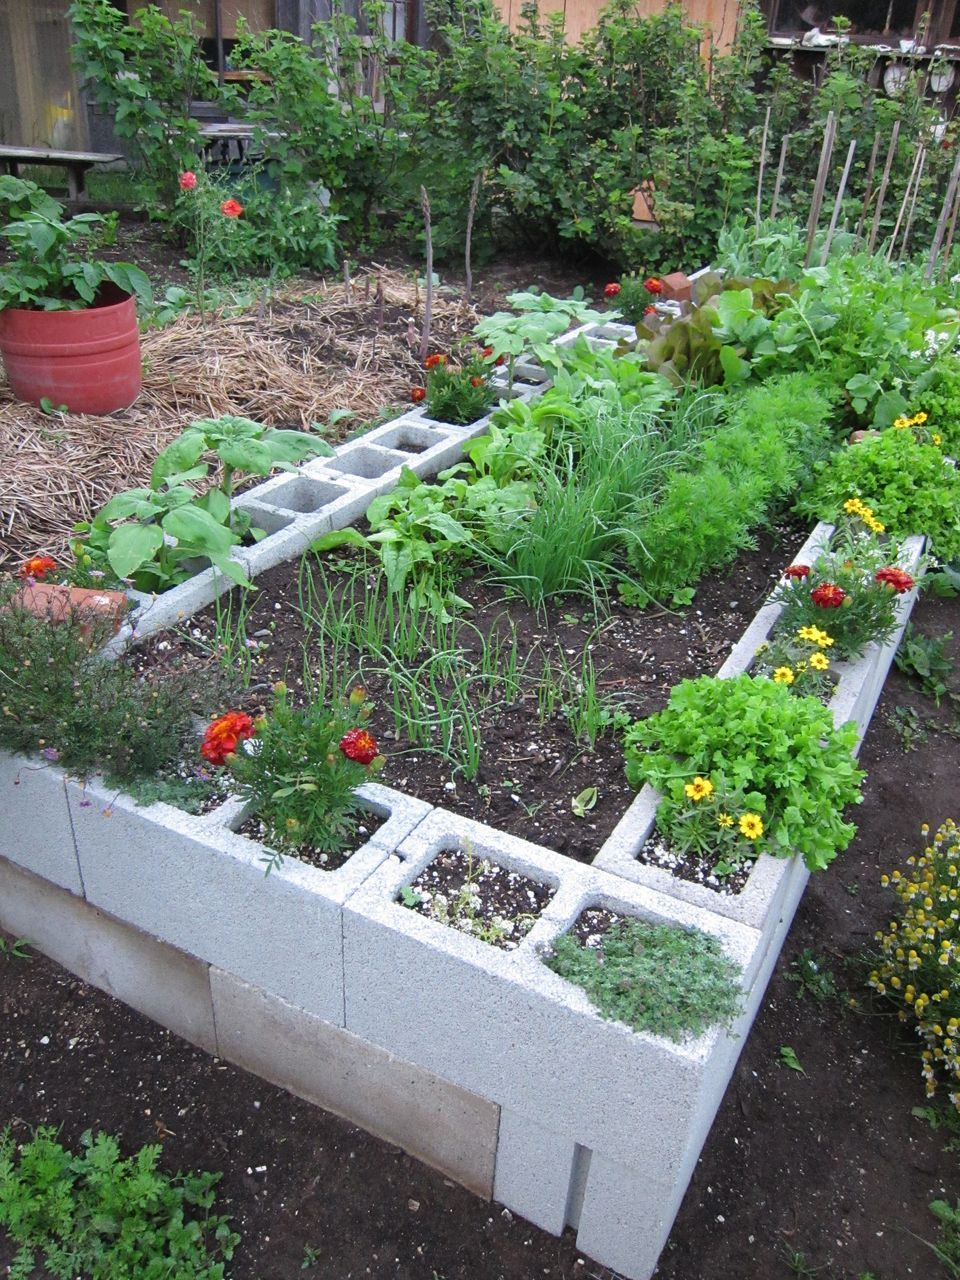 Fascinating Diy Cinder Block Garden Design Ideas Vegetable Garden Raised Beds Cinder Block Garden Raised Garden